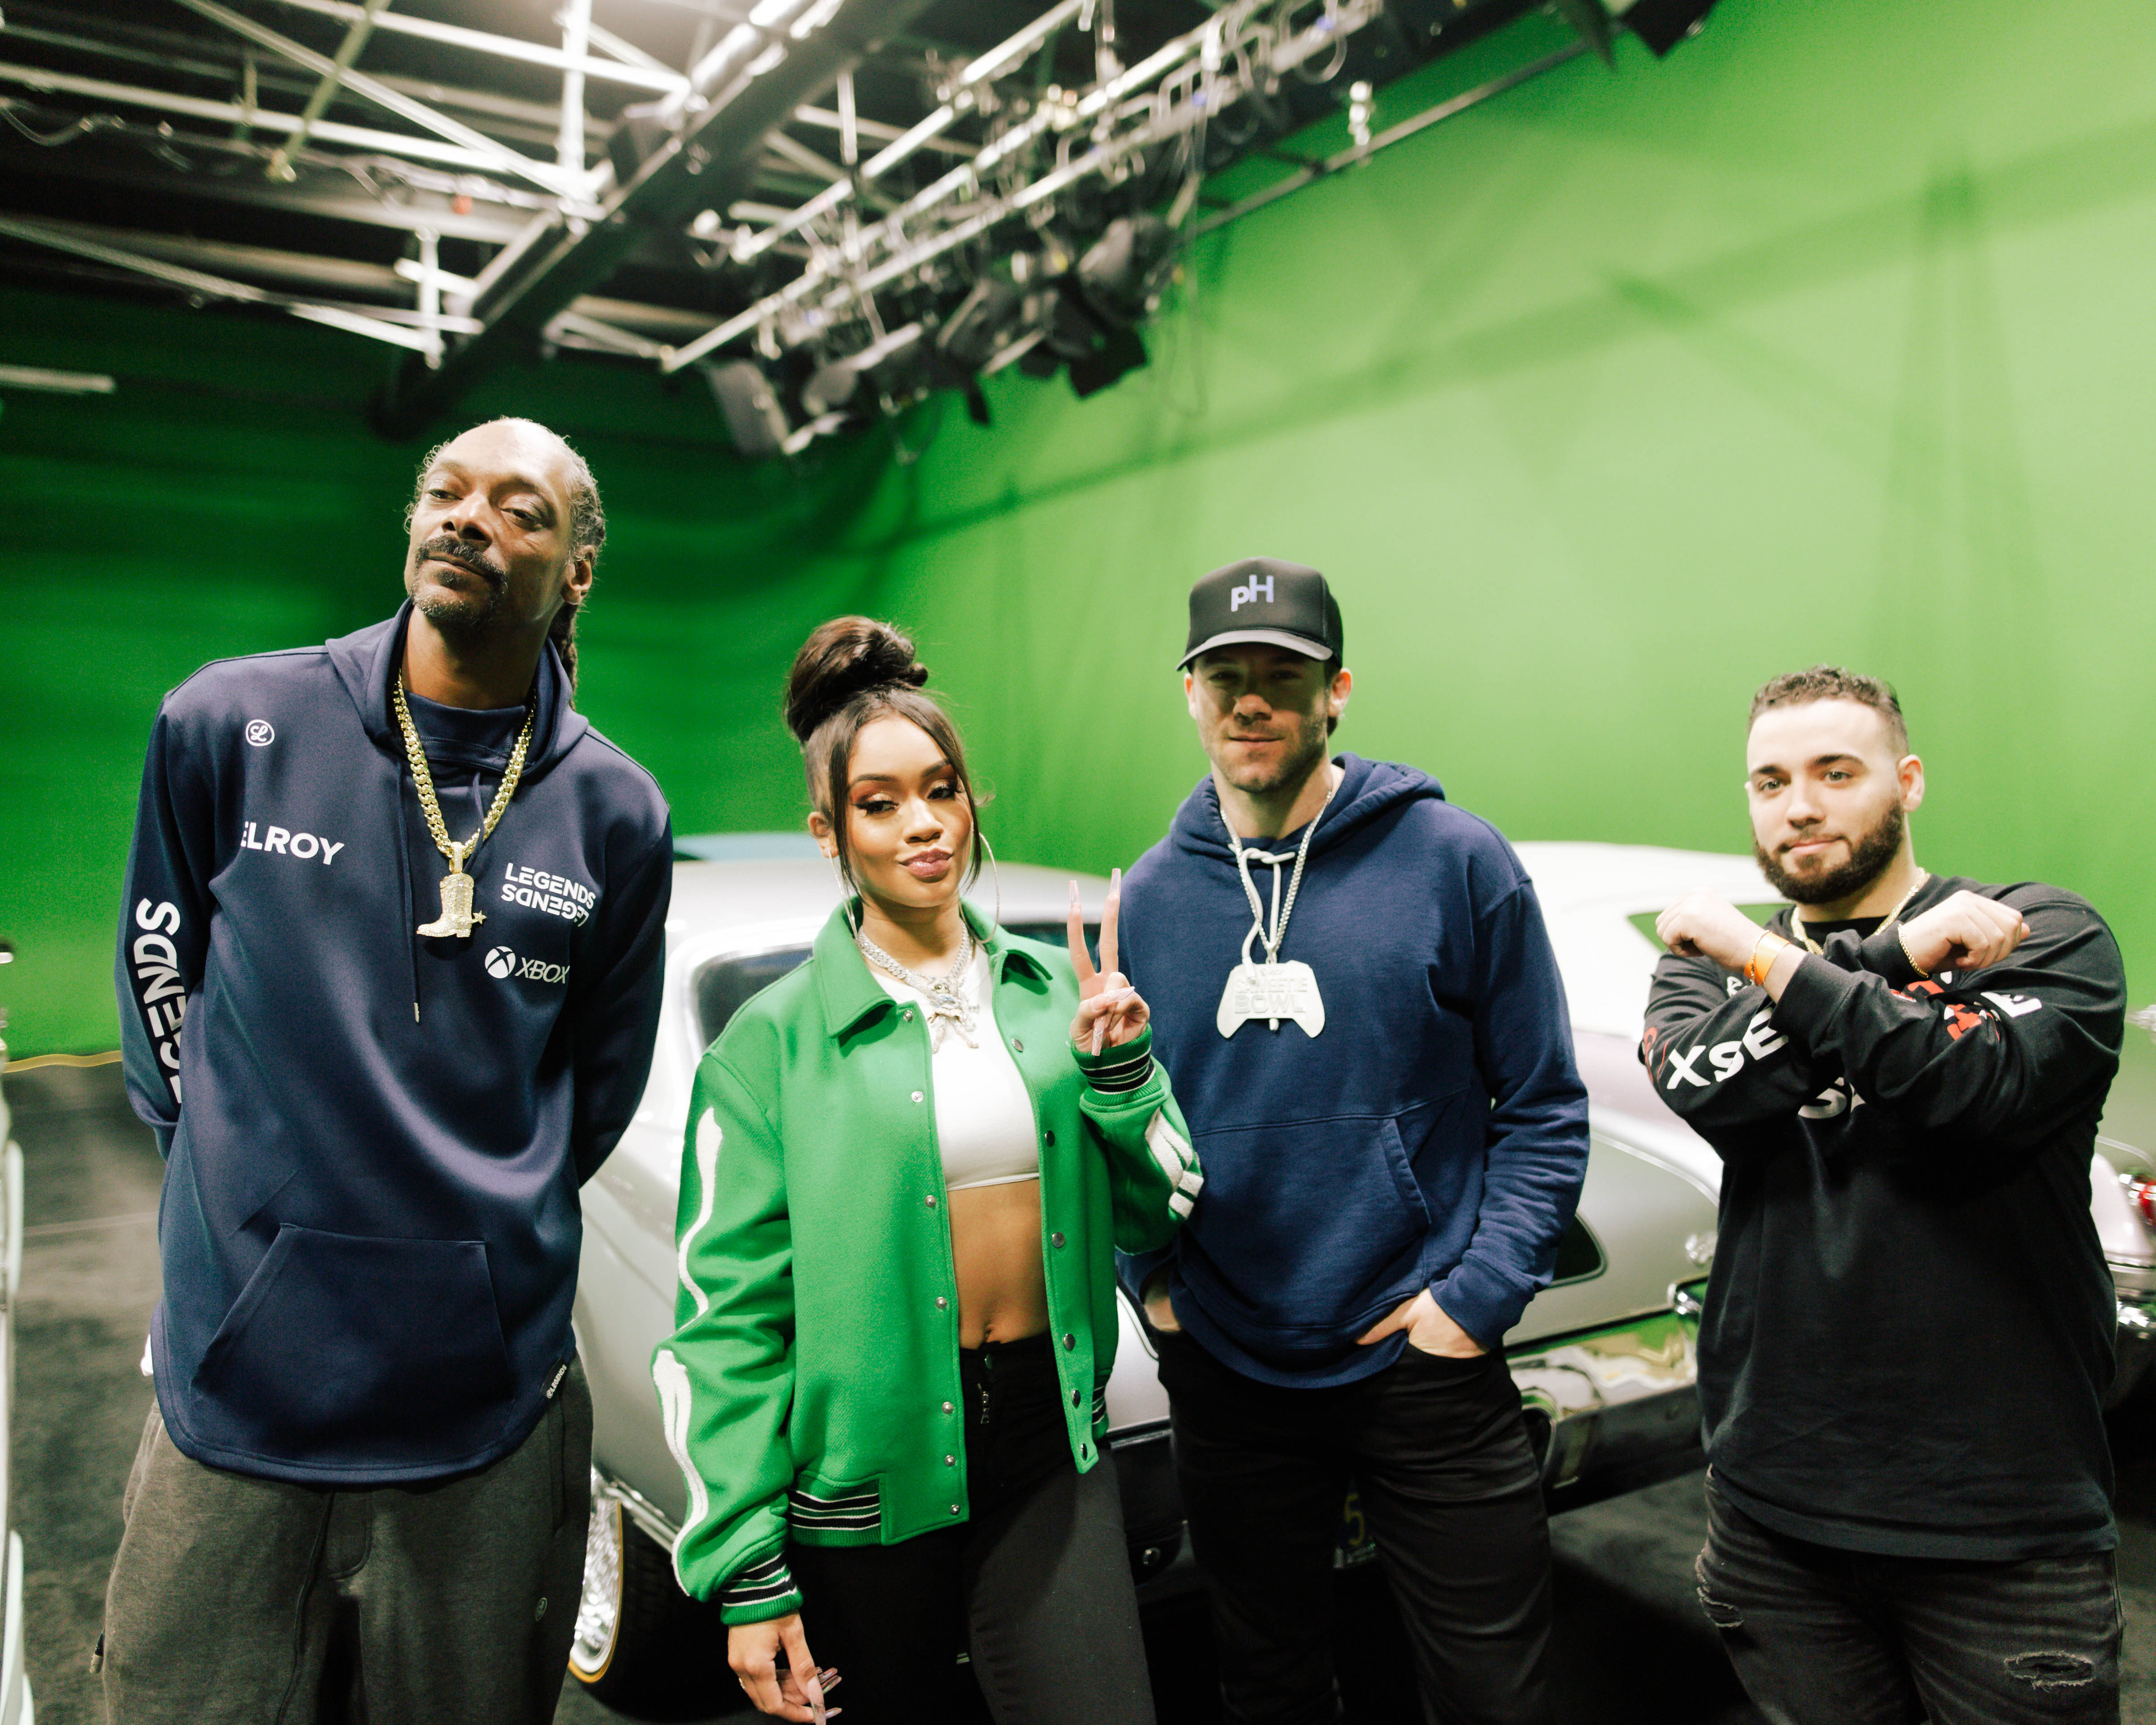 Saweetie & Xbox Team Up For Inaugural Saweetie Bowl Gaming Competition